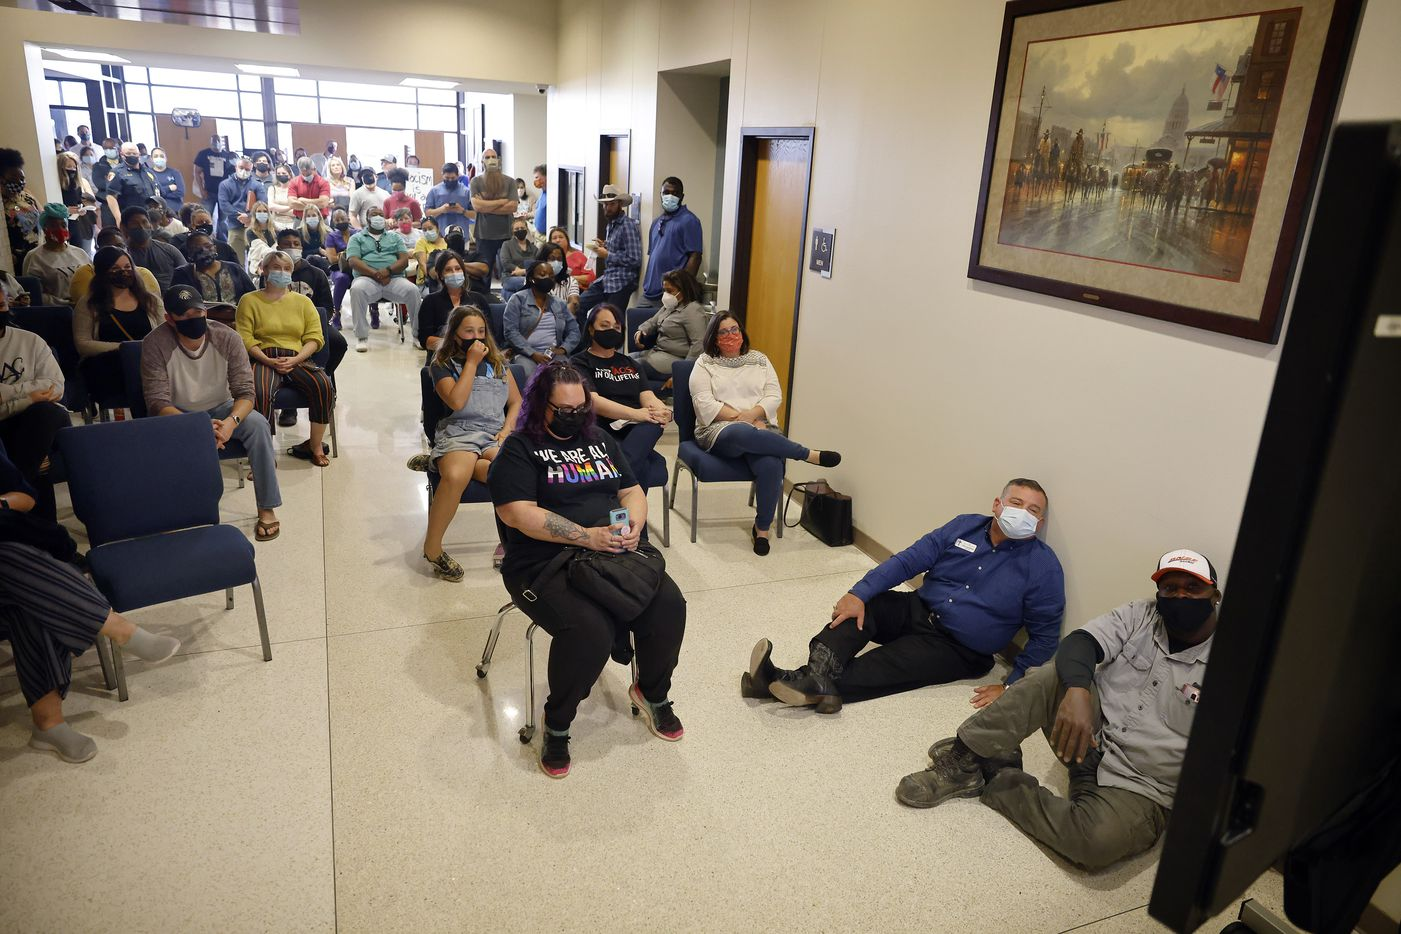 """From the hallway, an overflow crowd of parents and supporters watched a closed-circuit video feed of the Aledo ISD school board meeting, Monday, April 19, 2021. The people came to support the parents of two African-American boys who were targeted in a racist Snapchat group with multiple names, including """"Slave Trade"""" and another that included a racial slur. (Tom Fox/The Dallas Morning News)"""